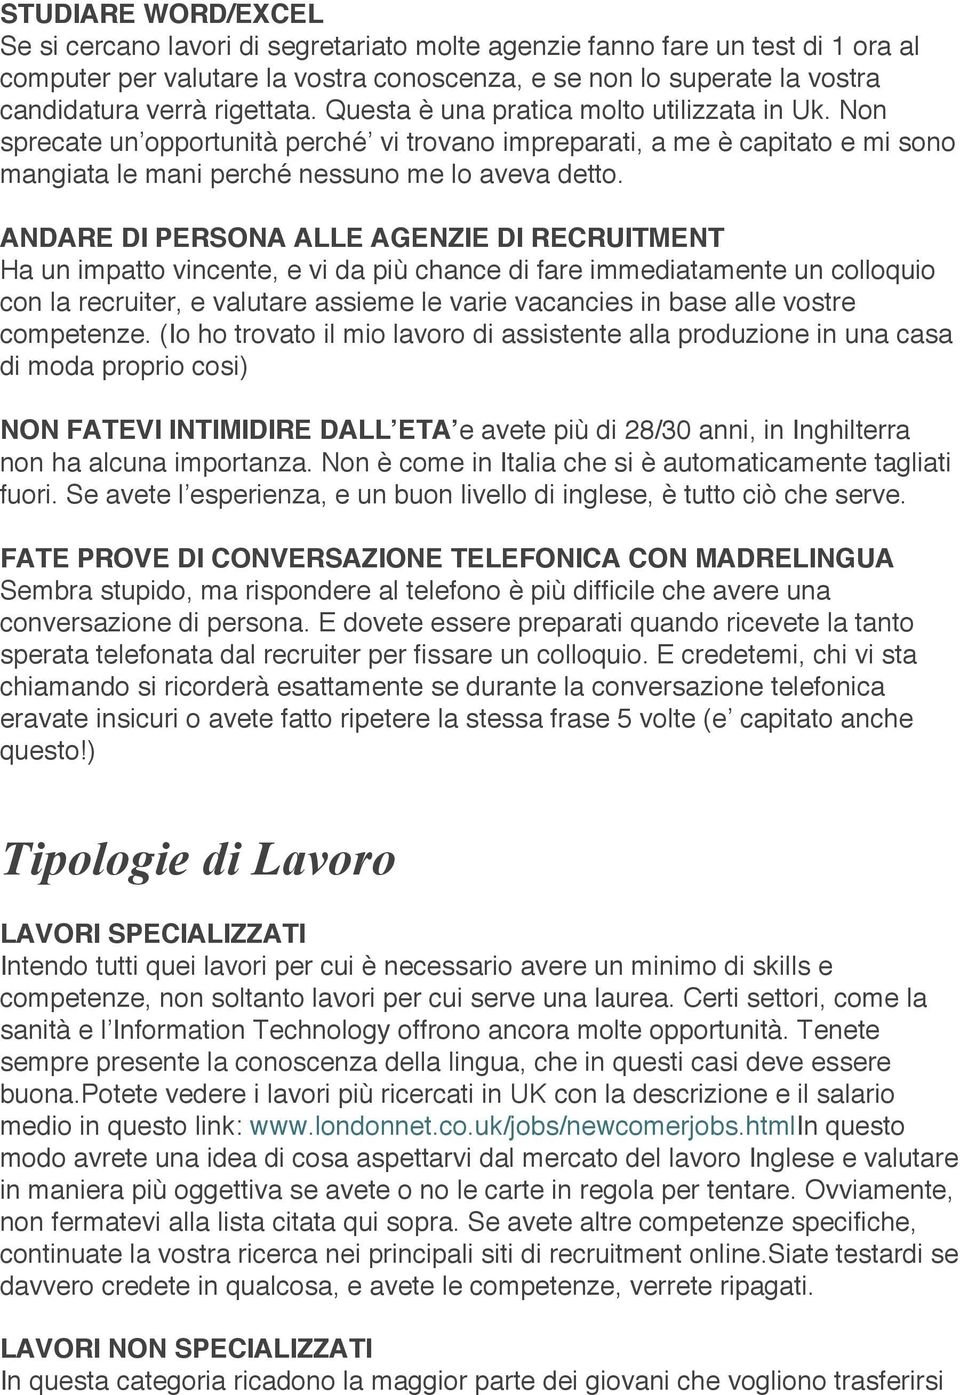 ANDARE DI PERSONA ALLE AGENZIE DI RECRUITMENT Ha un impatto vincente, e vi da più chance di fare immediatamente un colloquio con la recruiter, e valutare assieme le varie vacancies in base alle